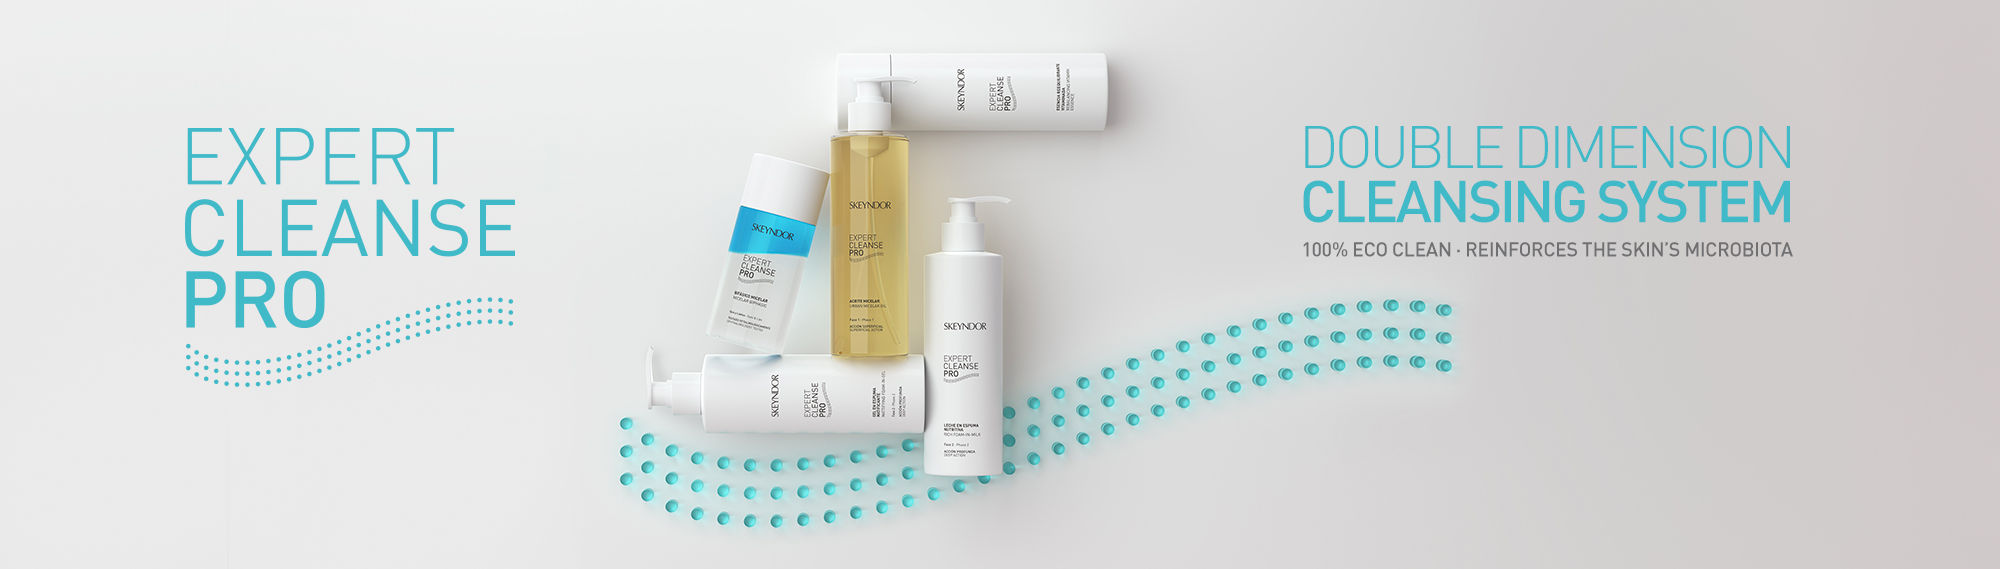 Expert Cleanse PRO. Double dimension cleansing system. 100% eco-clean